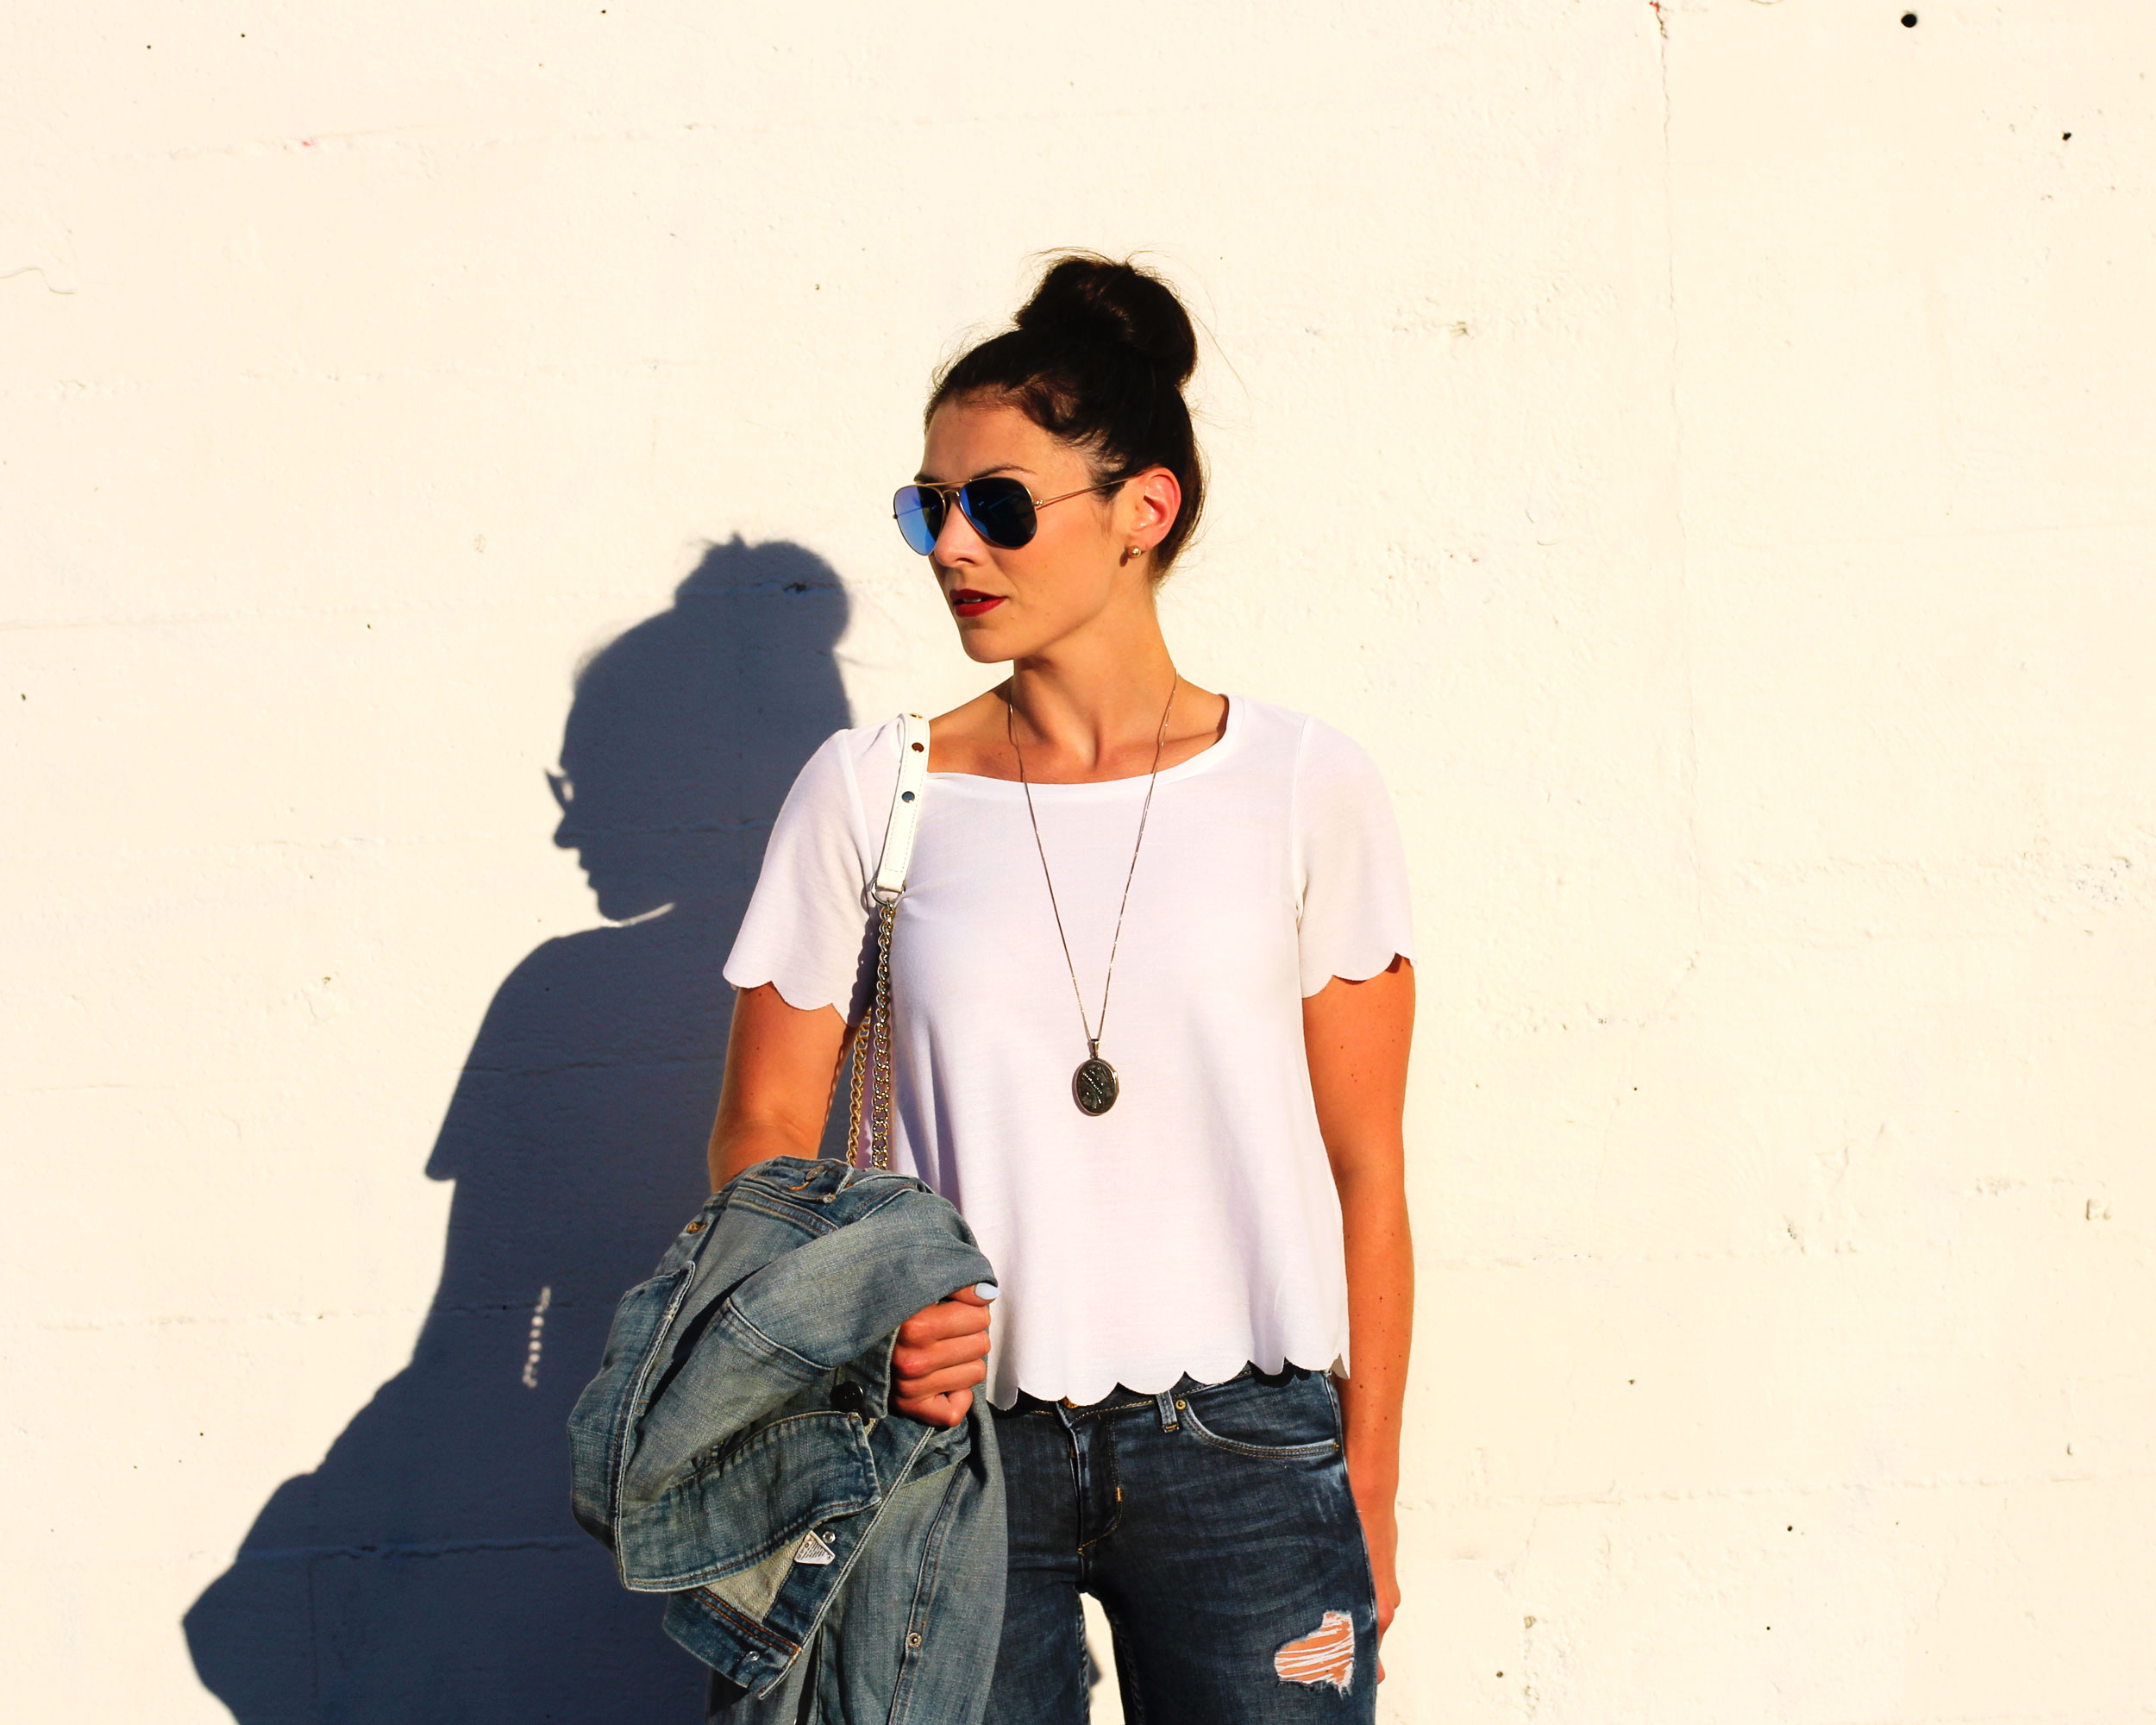 Topshop Scallop Frill Tee, J.Crew Denim Jacket, Rebecca Minkoff Mini MAC Fringe, Ray-Ban Mirrored Lens Aviators, Dolce Vita Sandals, Vintage Locket Necklace